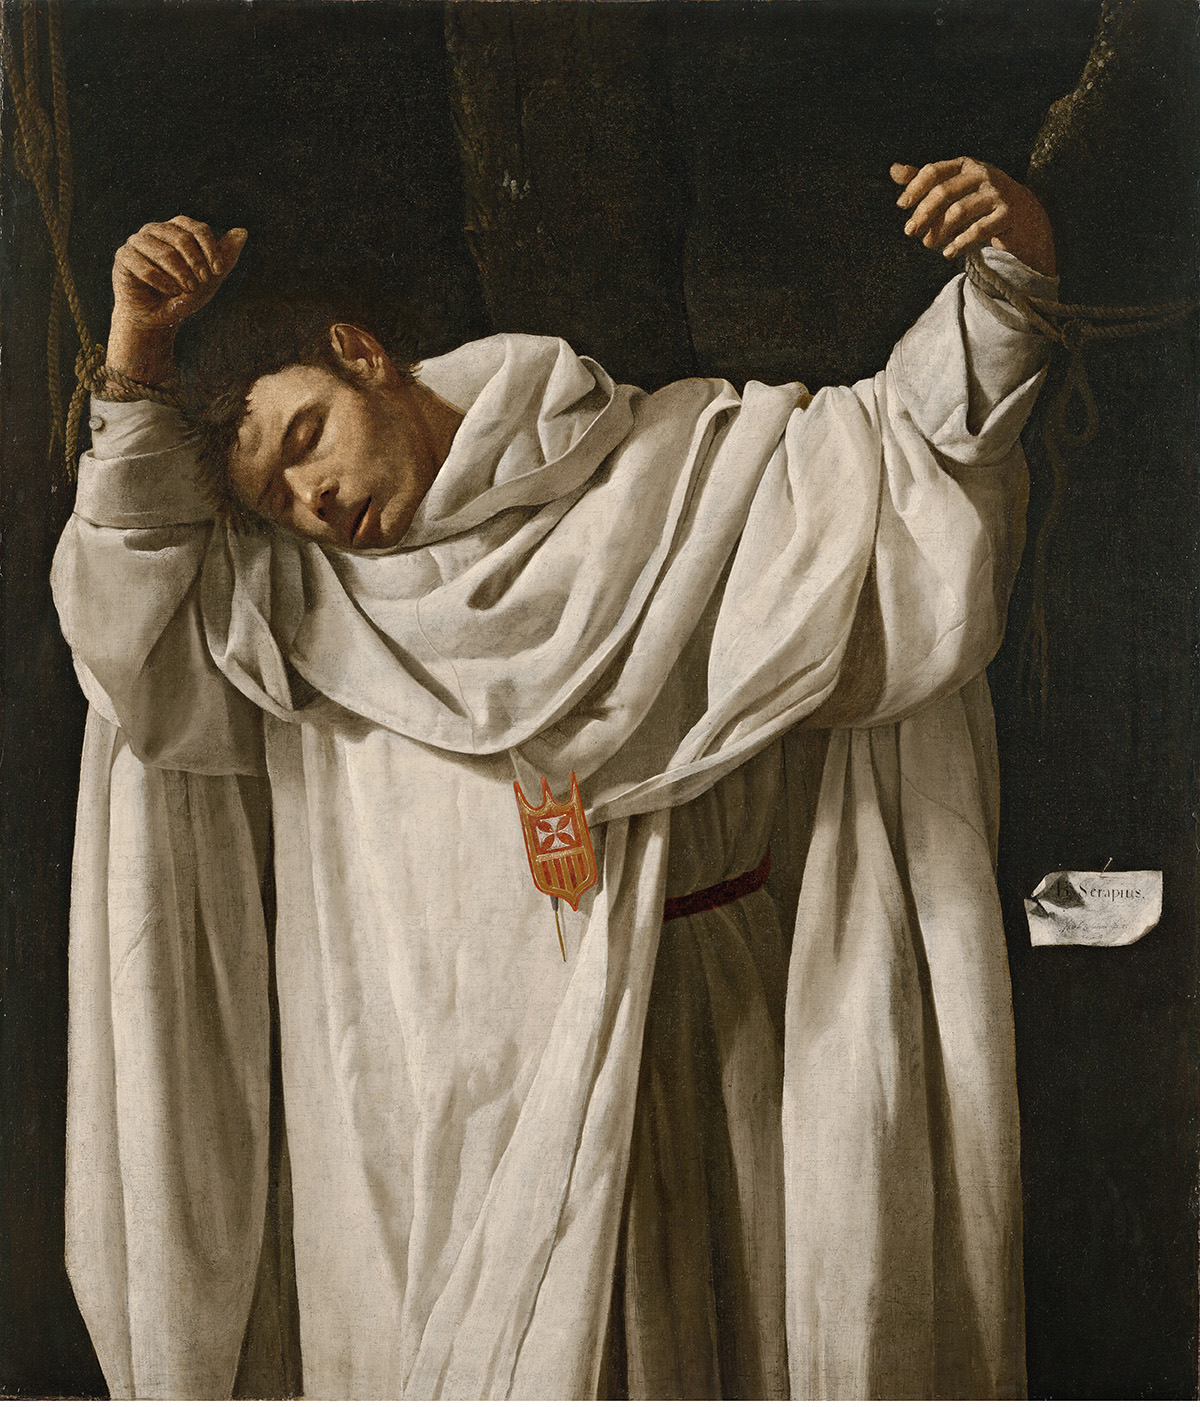 Francisco de Zurbarán - 'San Serapio', 1628 (Hartford, CT, Wadsworth Atheneum Museum of Art. The Ella Gallup Sumner and Mary Catlin Sumner Collection)